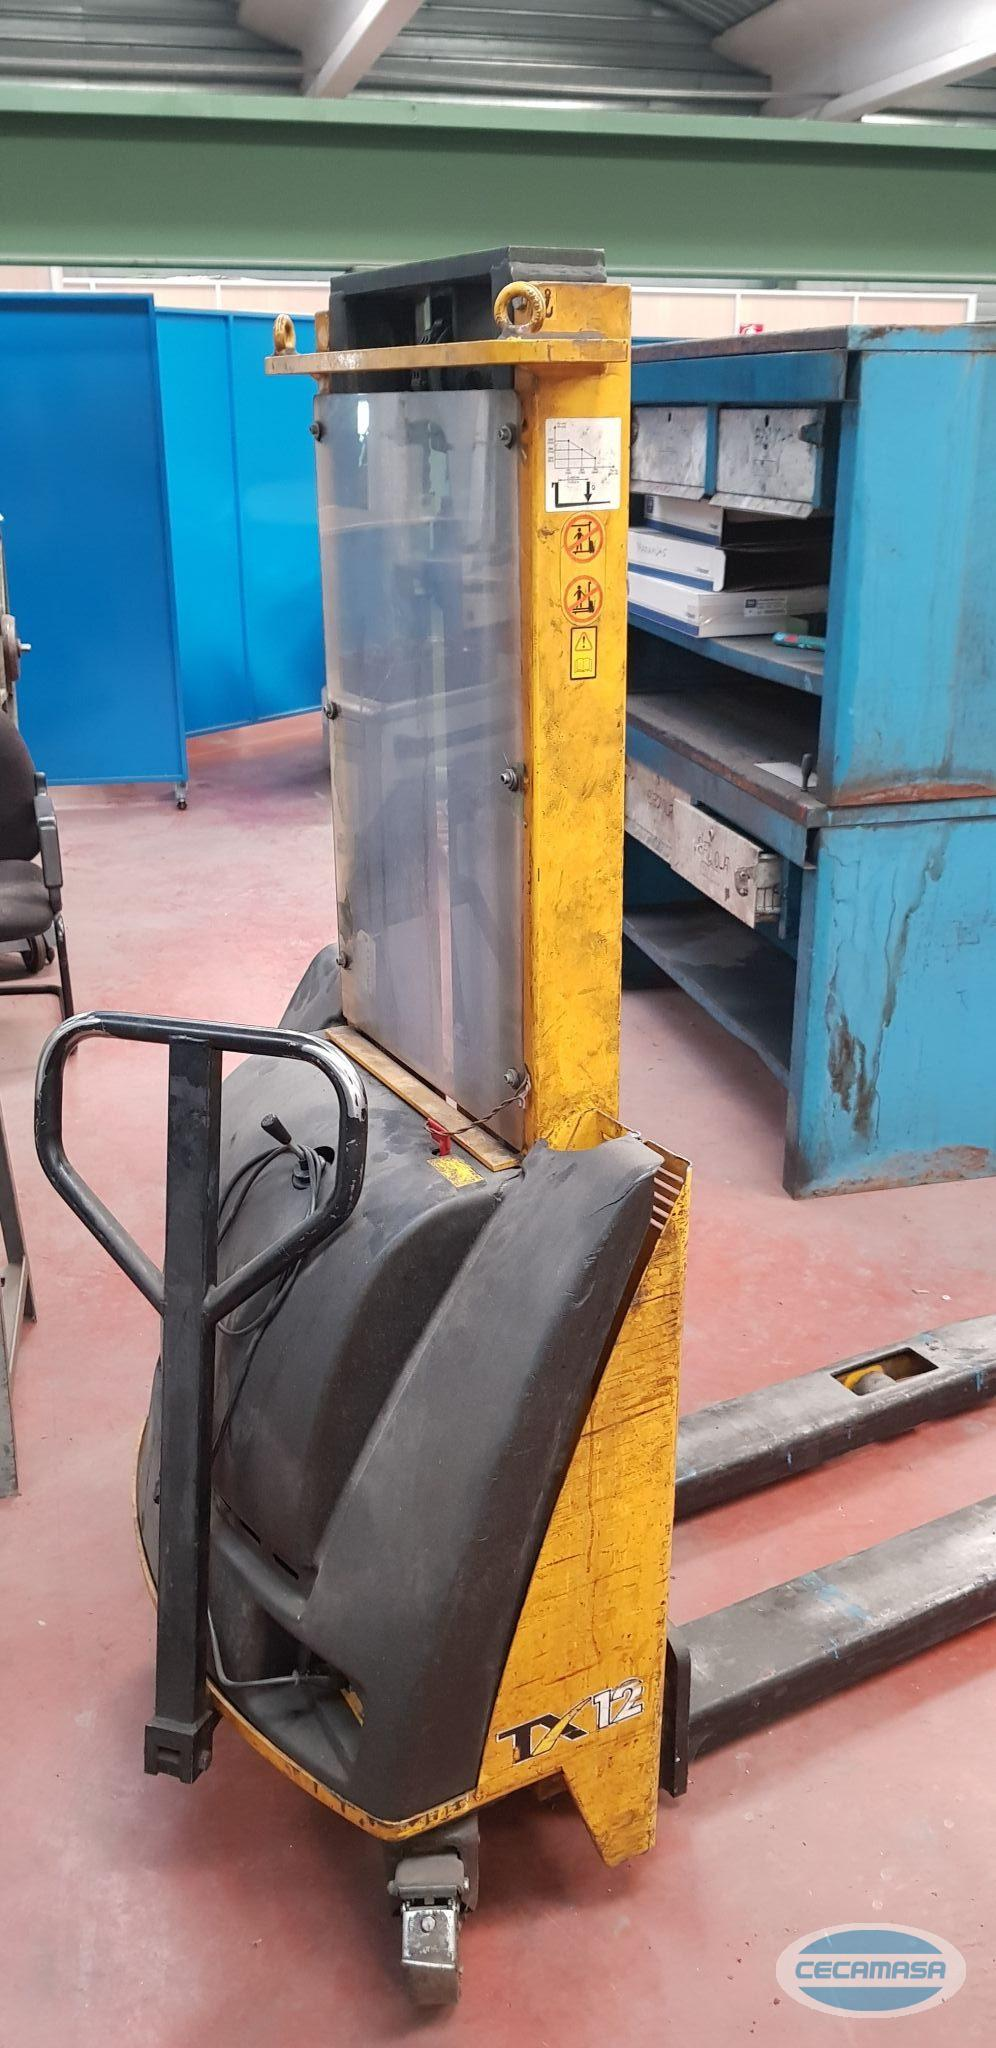 ELECTROMANUAL LIFT LIFTER TX12-25